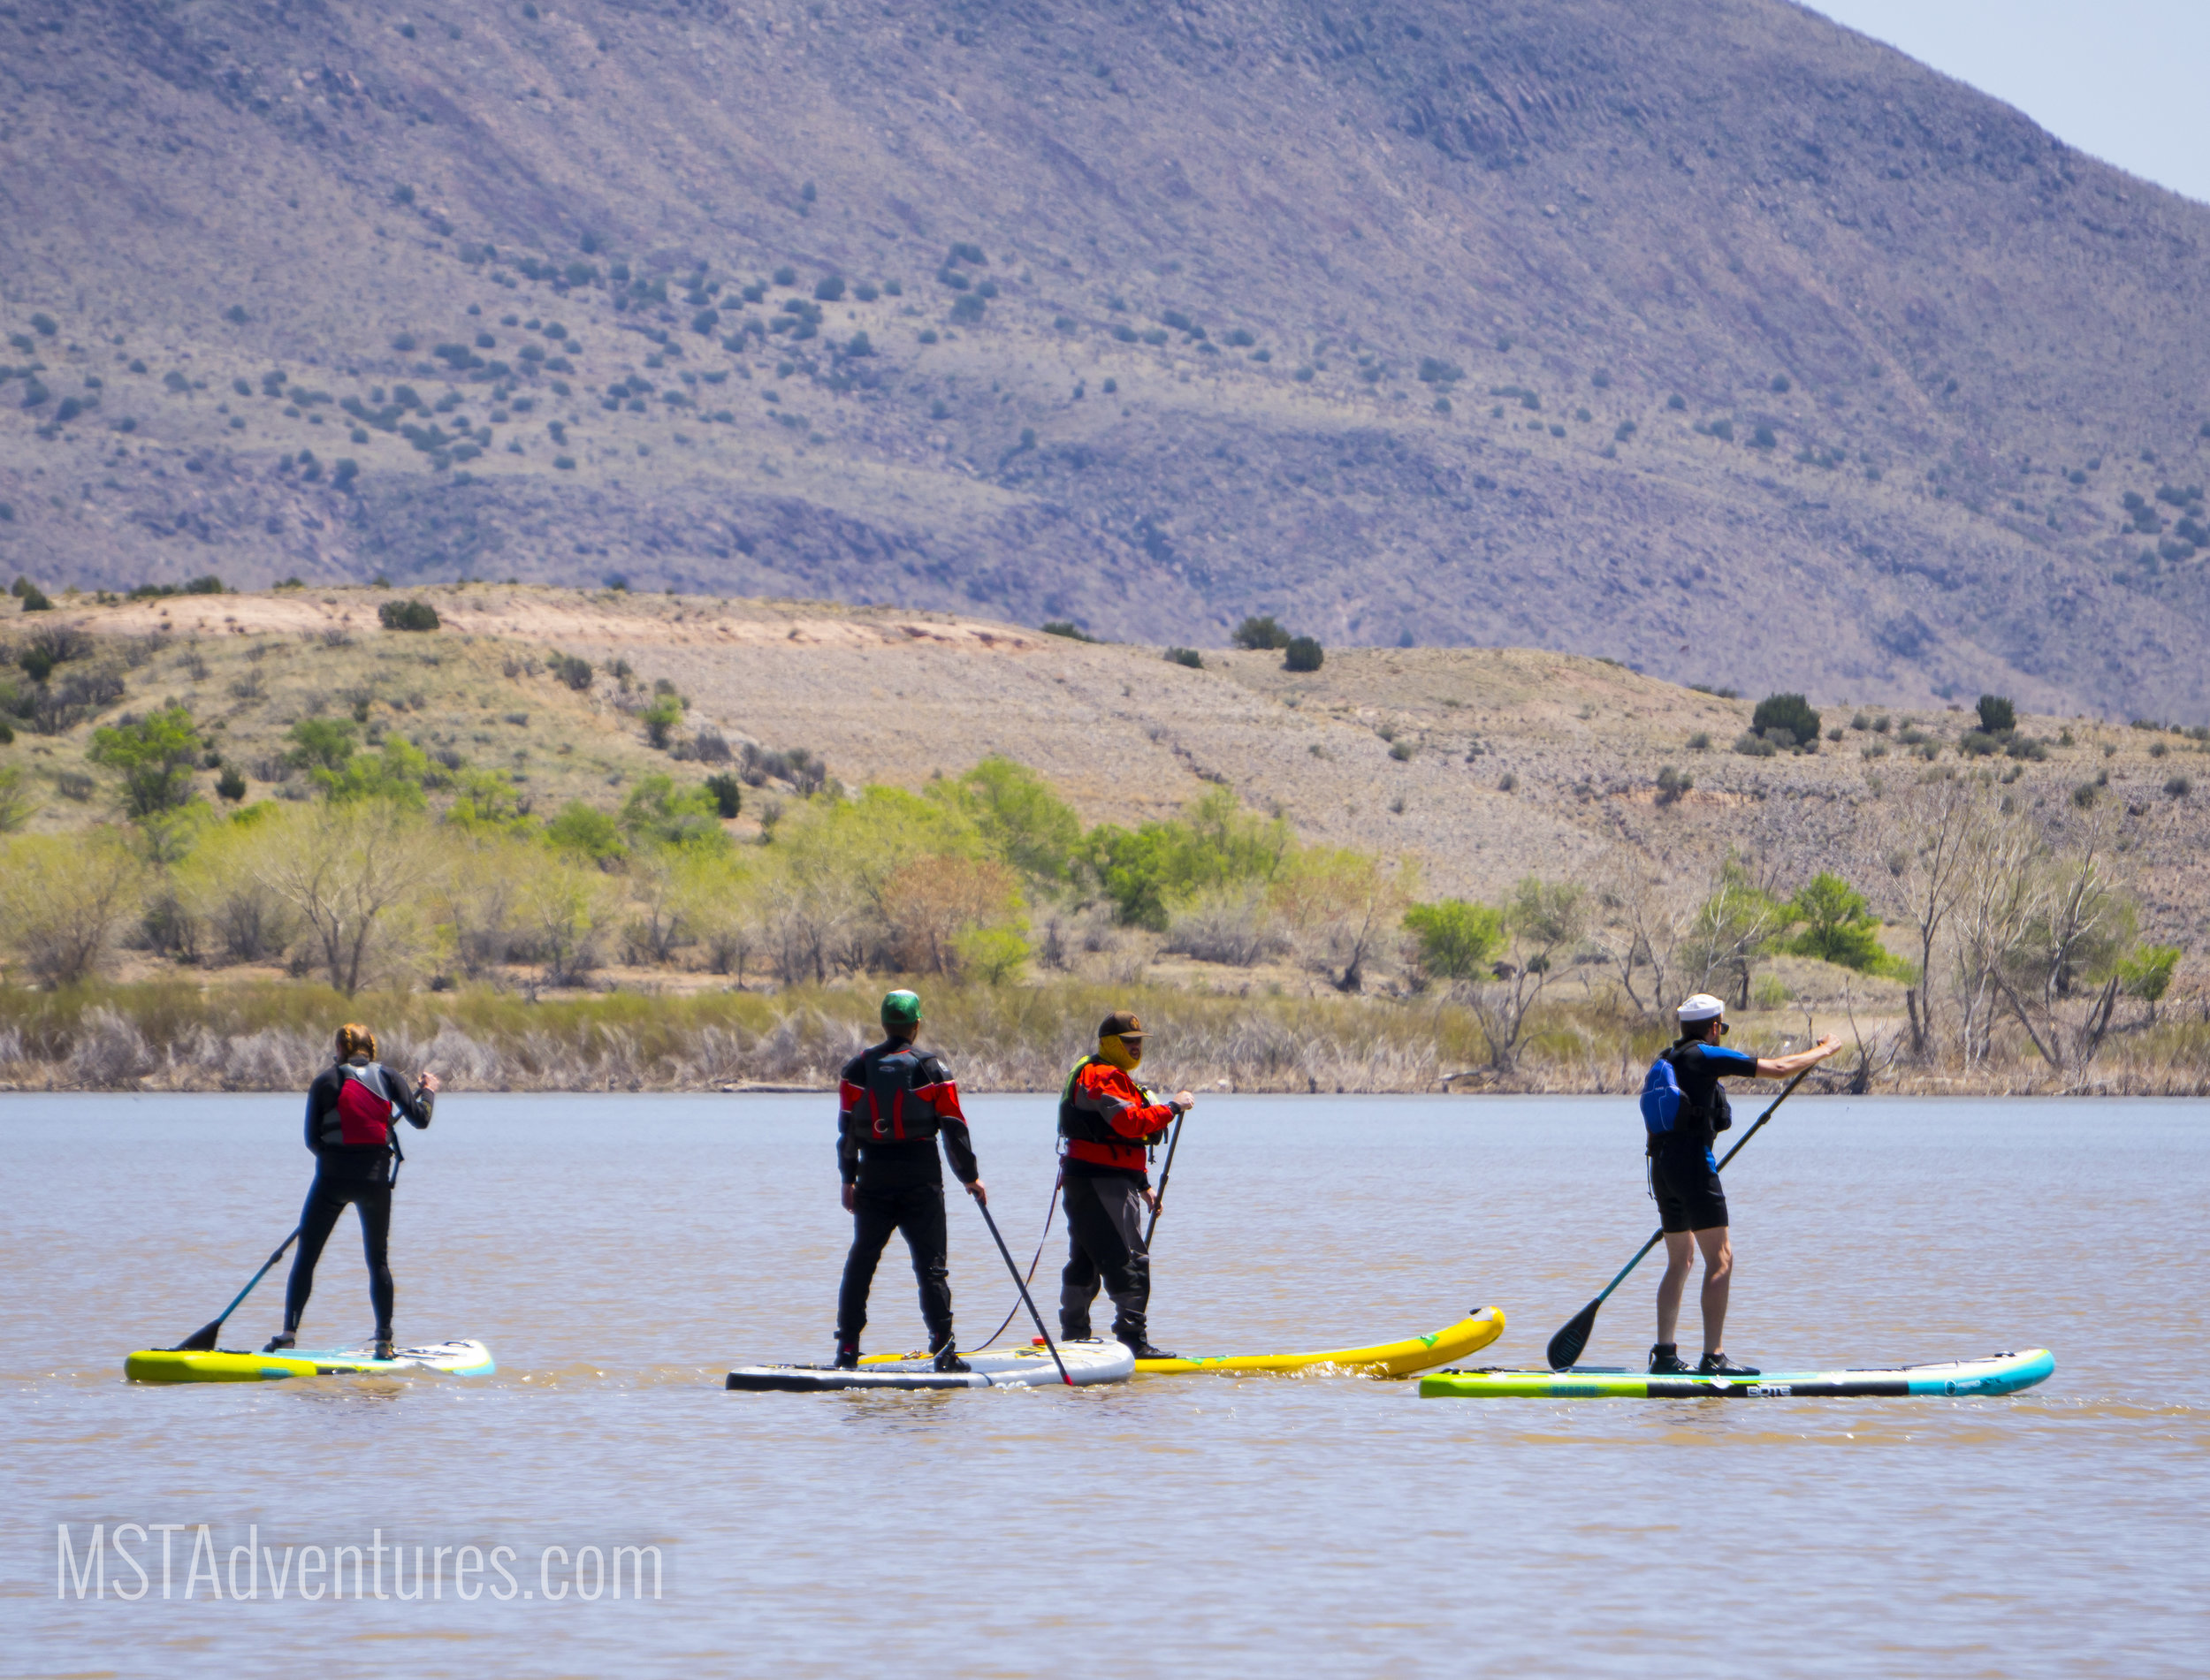 Enjoying an early-season paddle with friends on Cochiti Lake